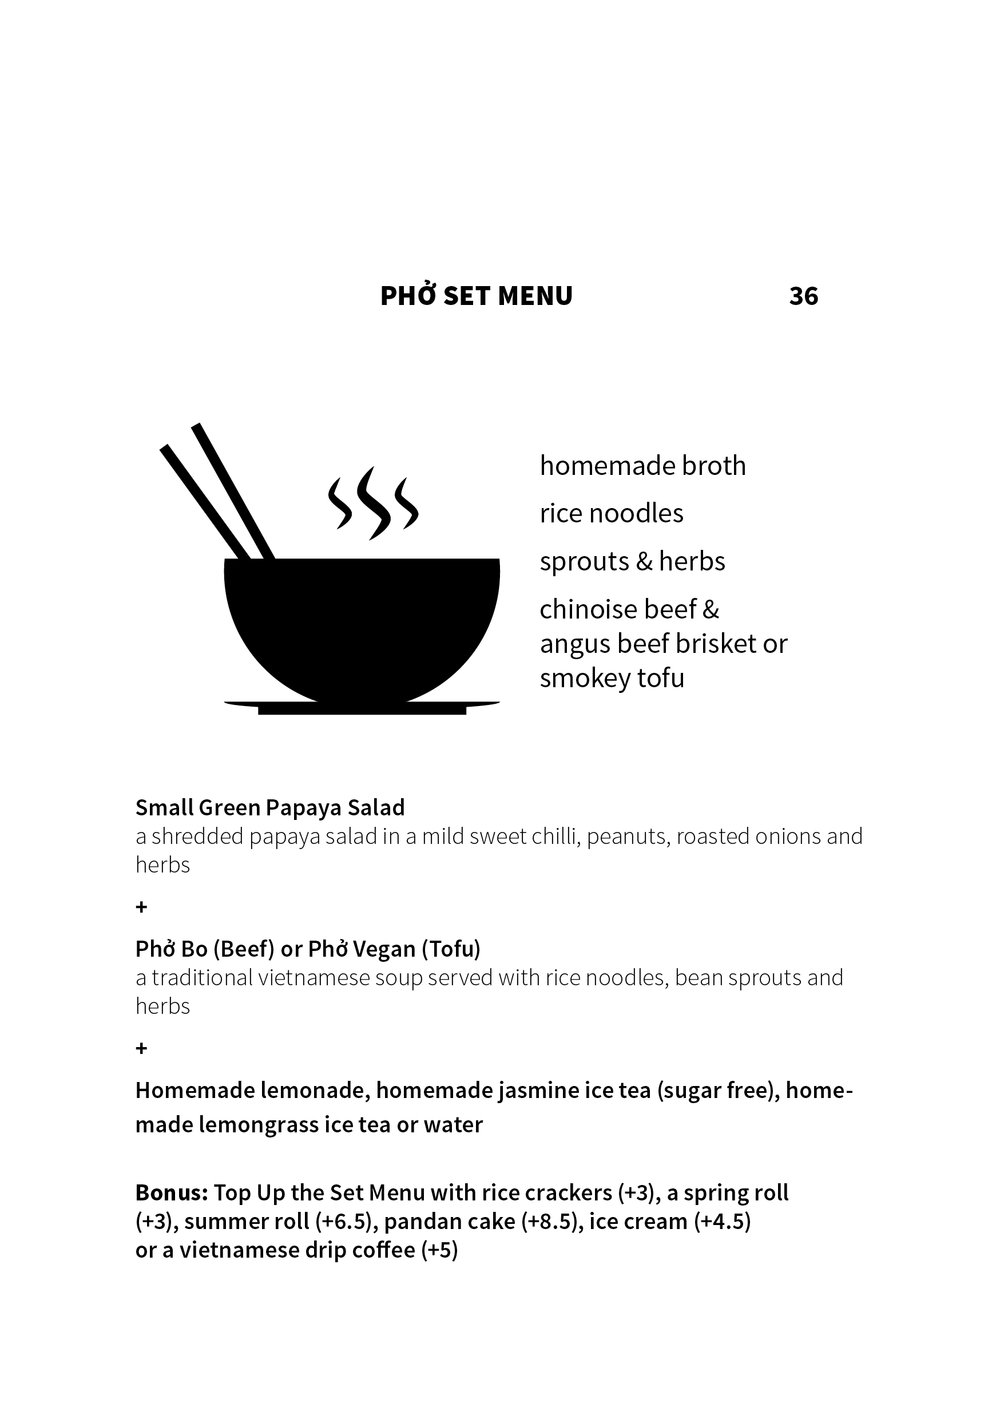 GC Summer Menu 2018_FINAL_+crop_marks4.png